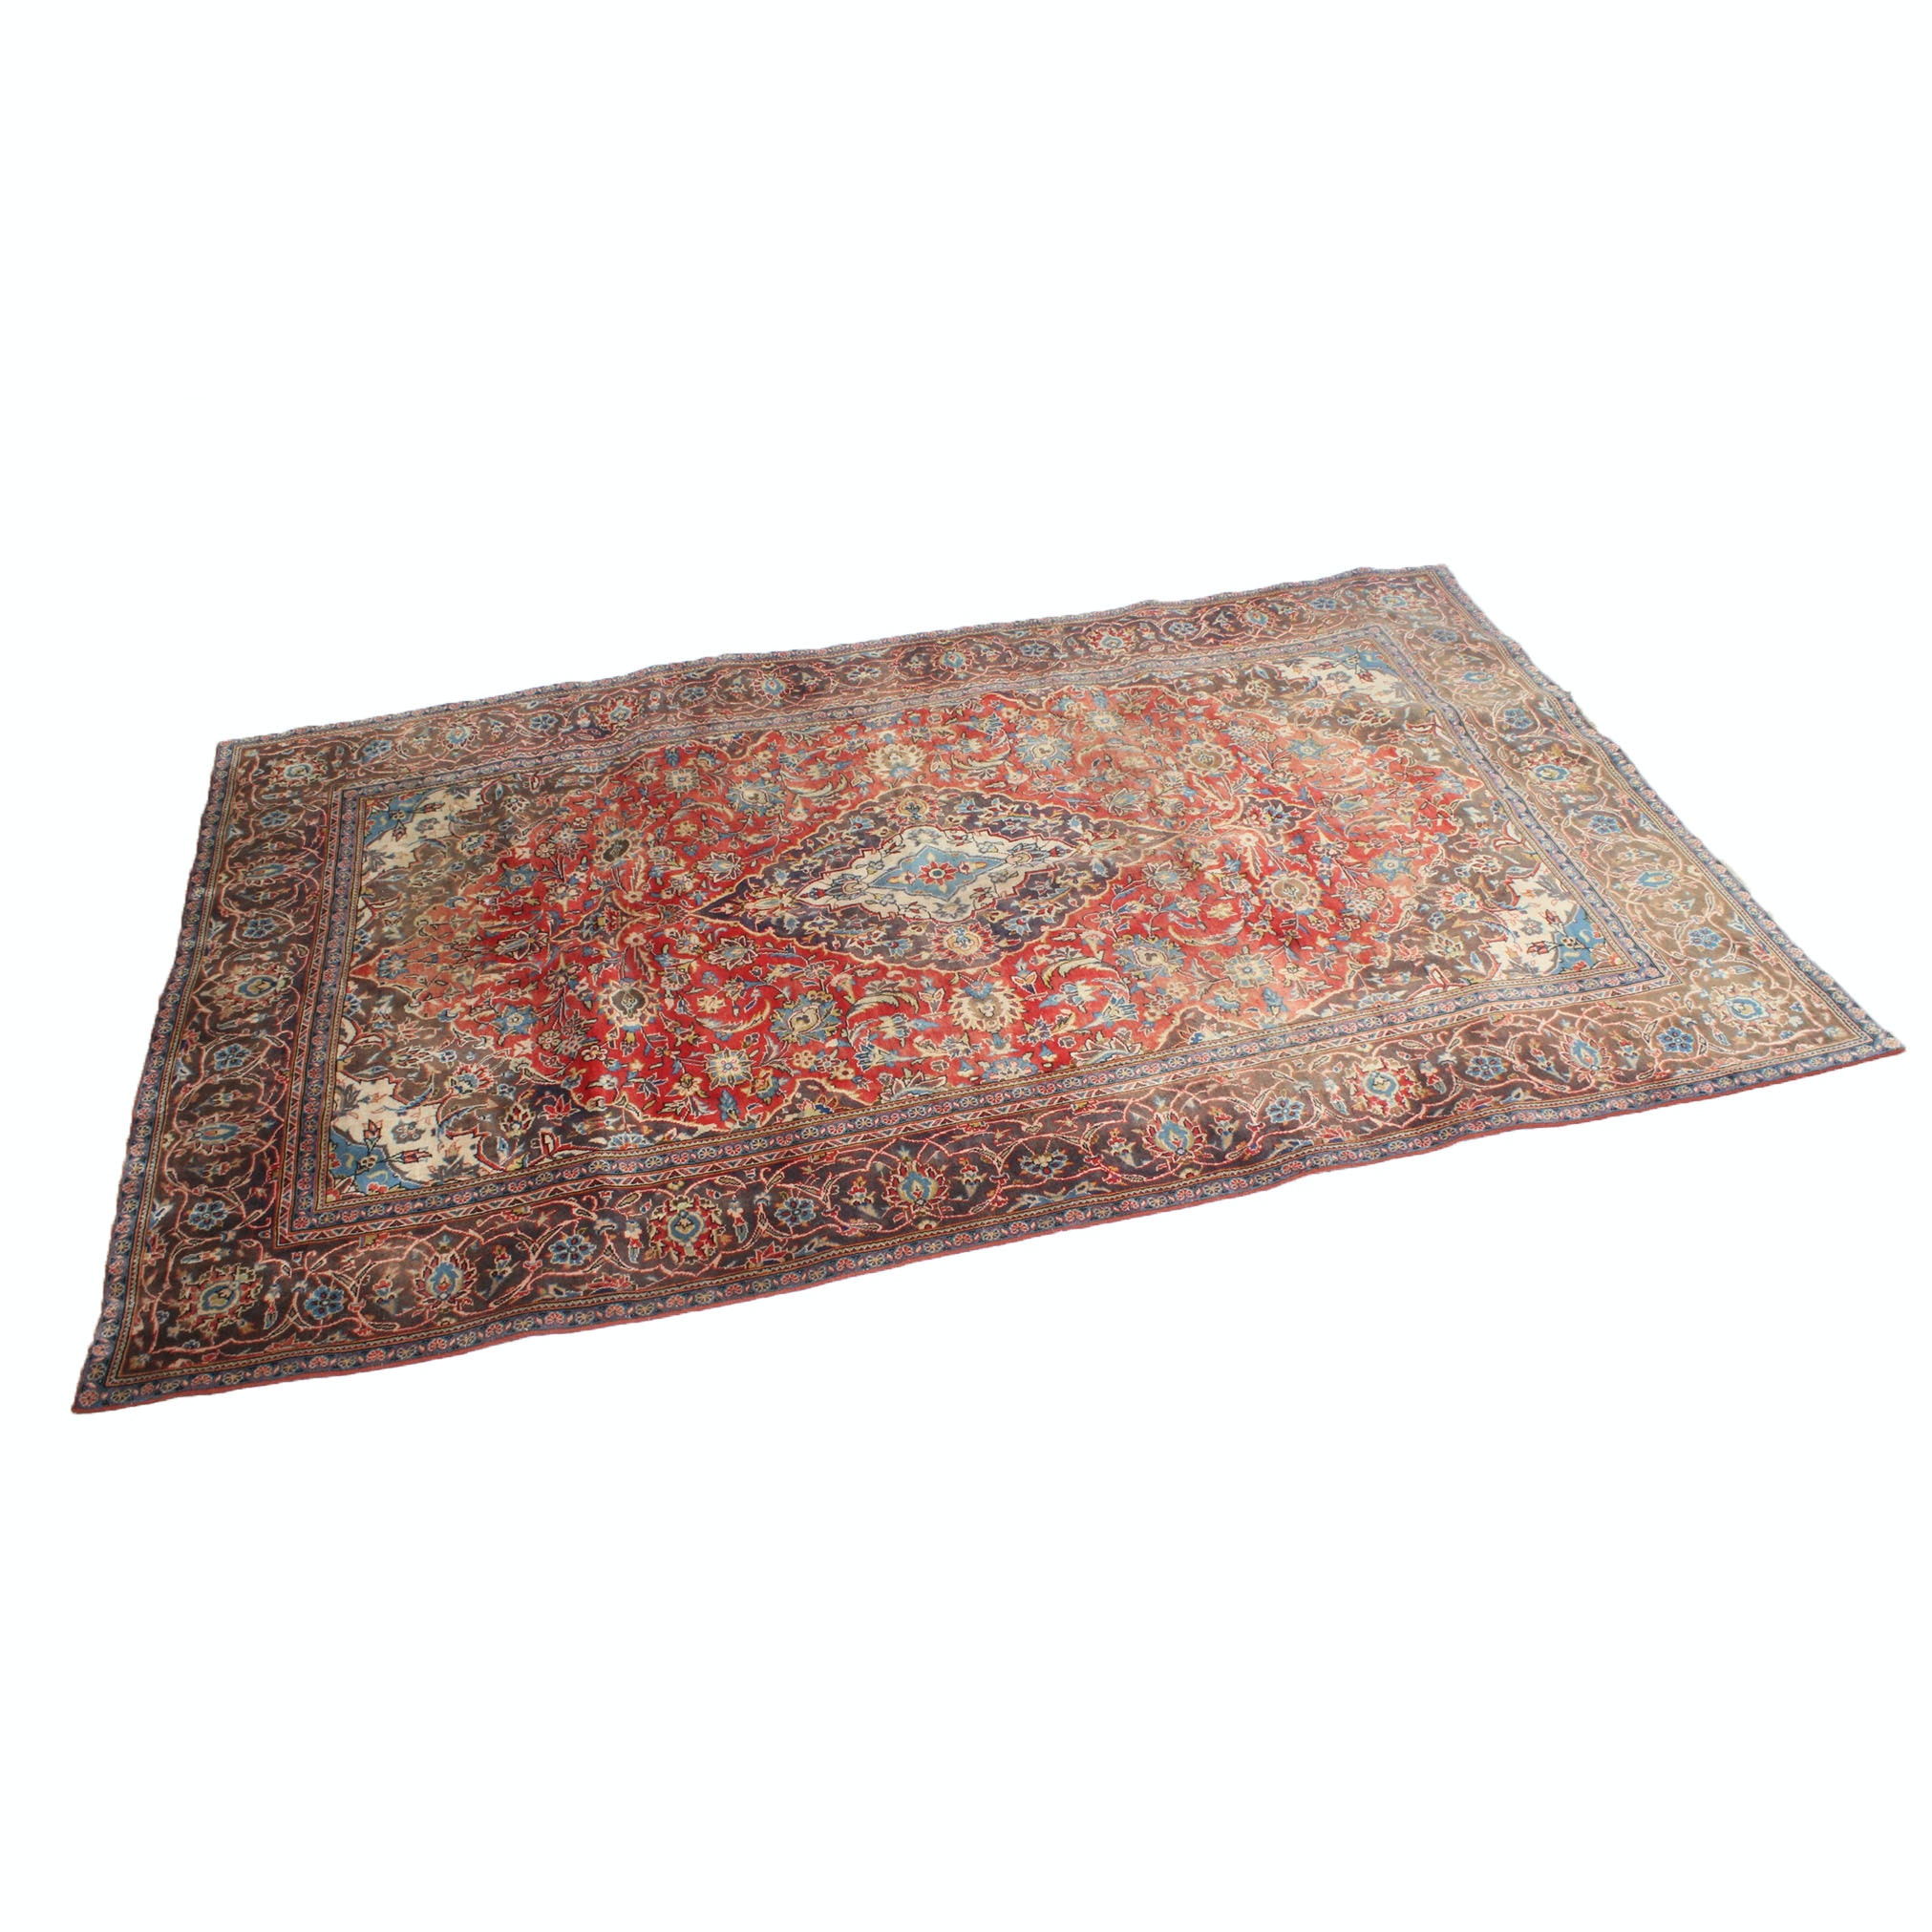 Hand-Knotted Persian Kashan Room Size Rug